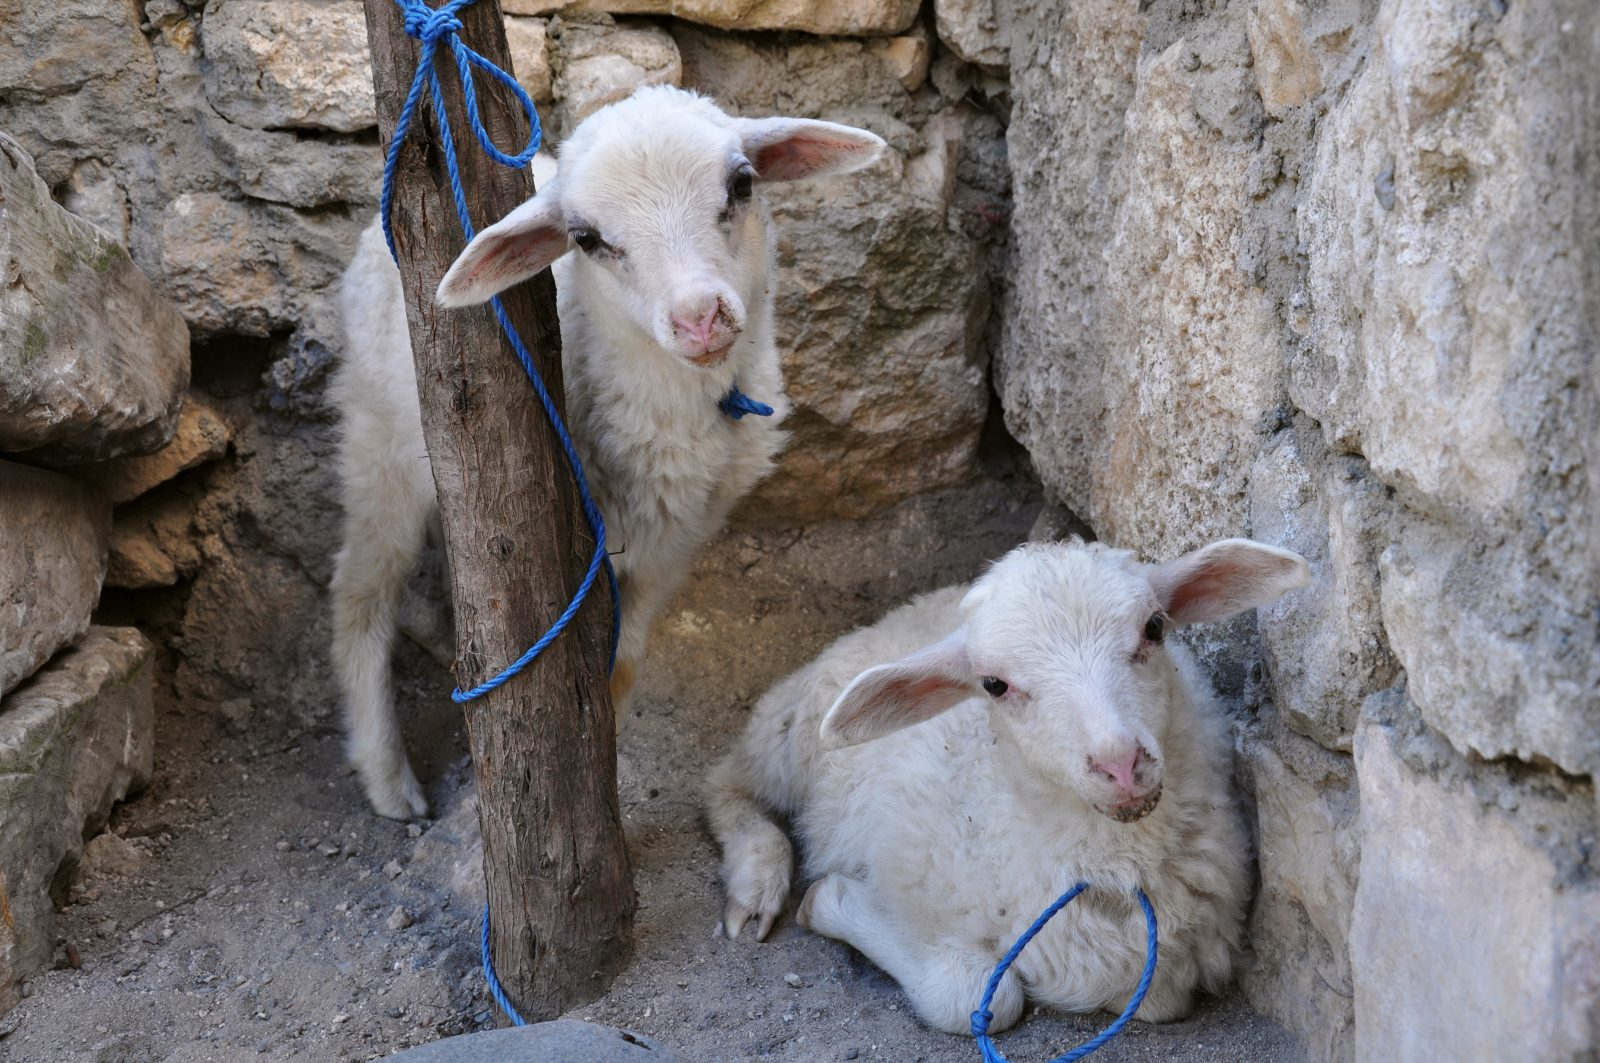 Two white sheep (lambs) tied to a pole near a stone wall waiting for slaughter